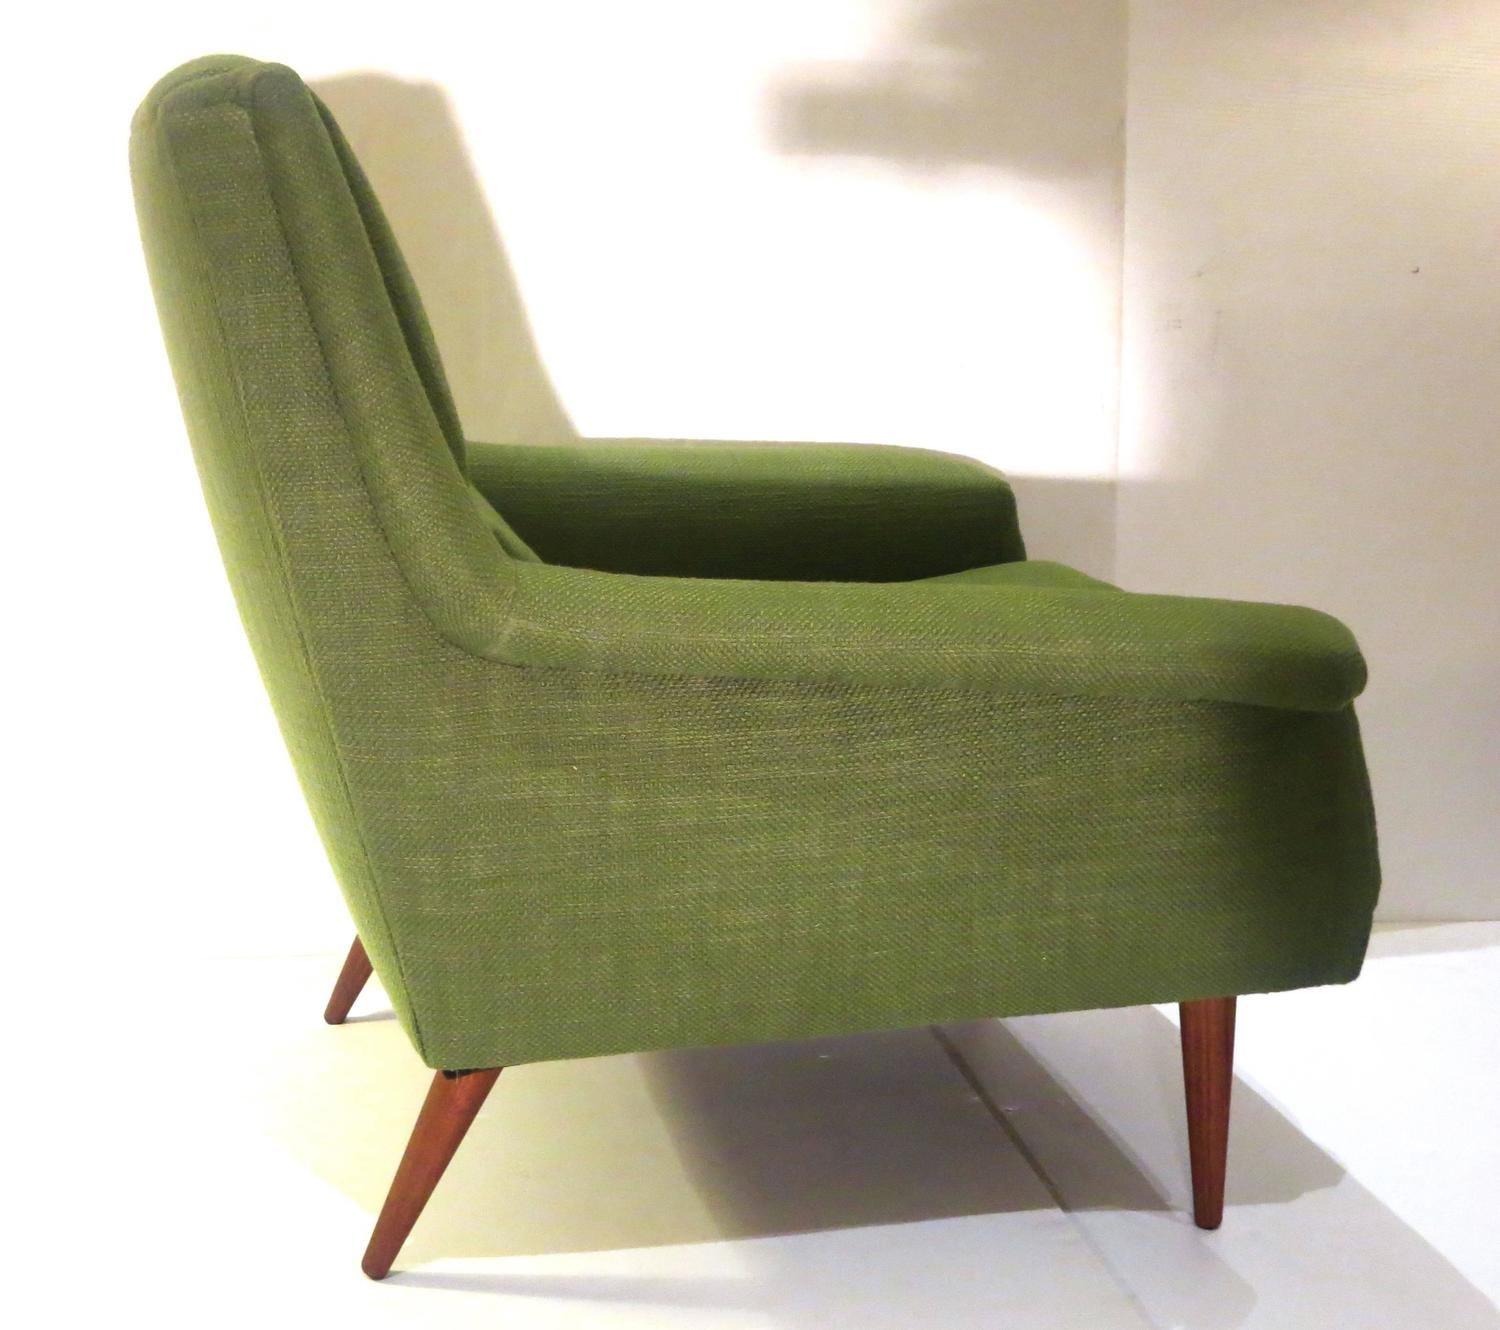 Green Upholstered Chair 1950s Danish Modern Dux Kelly Green Upholstered Lounge Chair